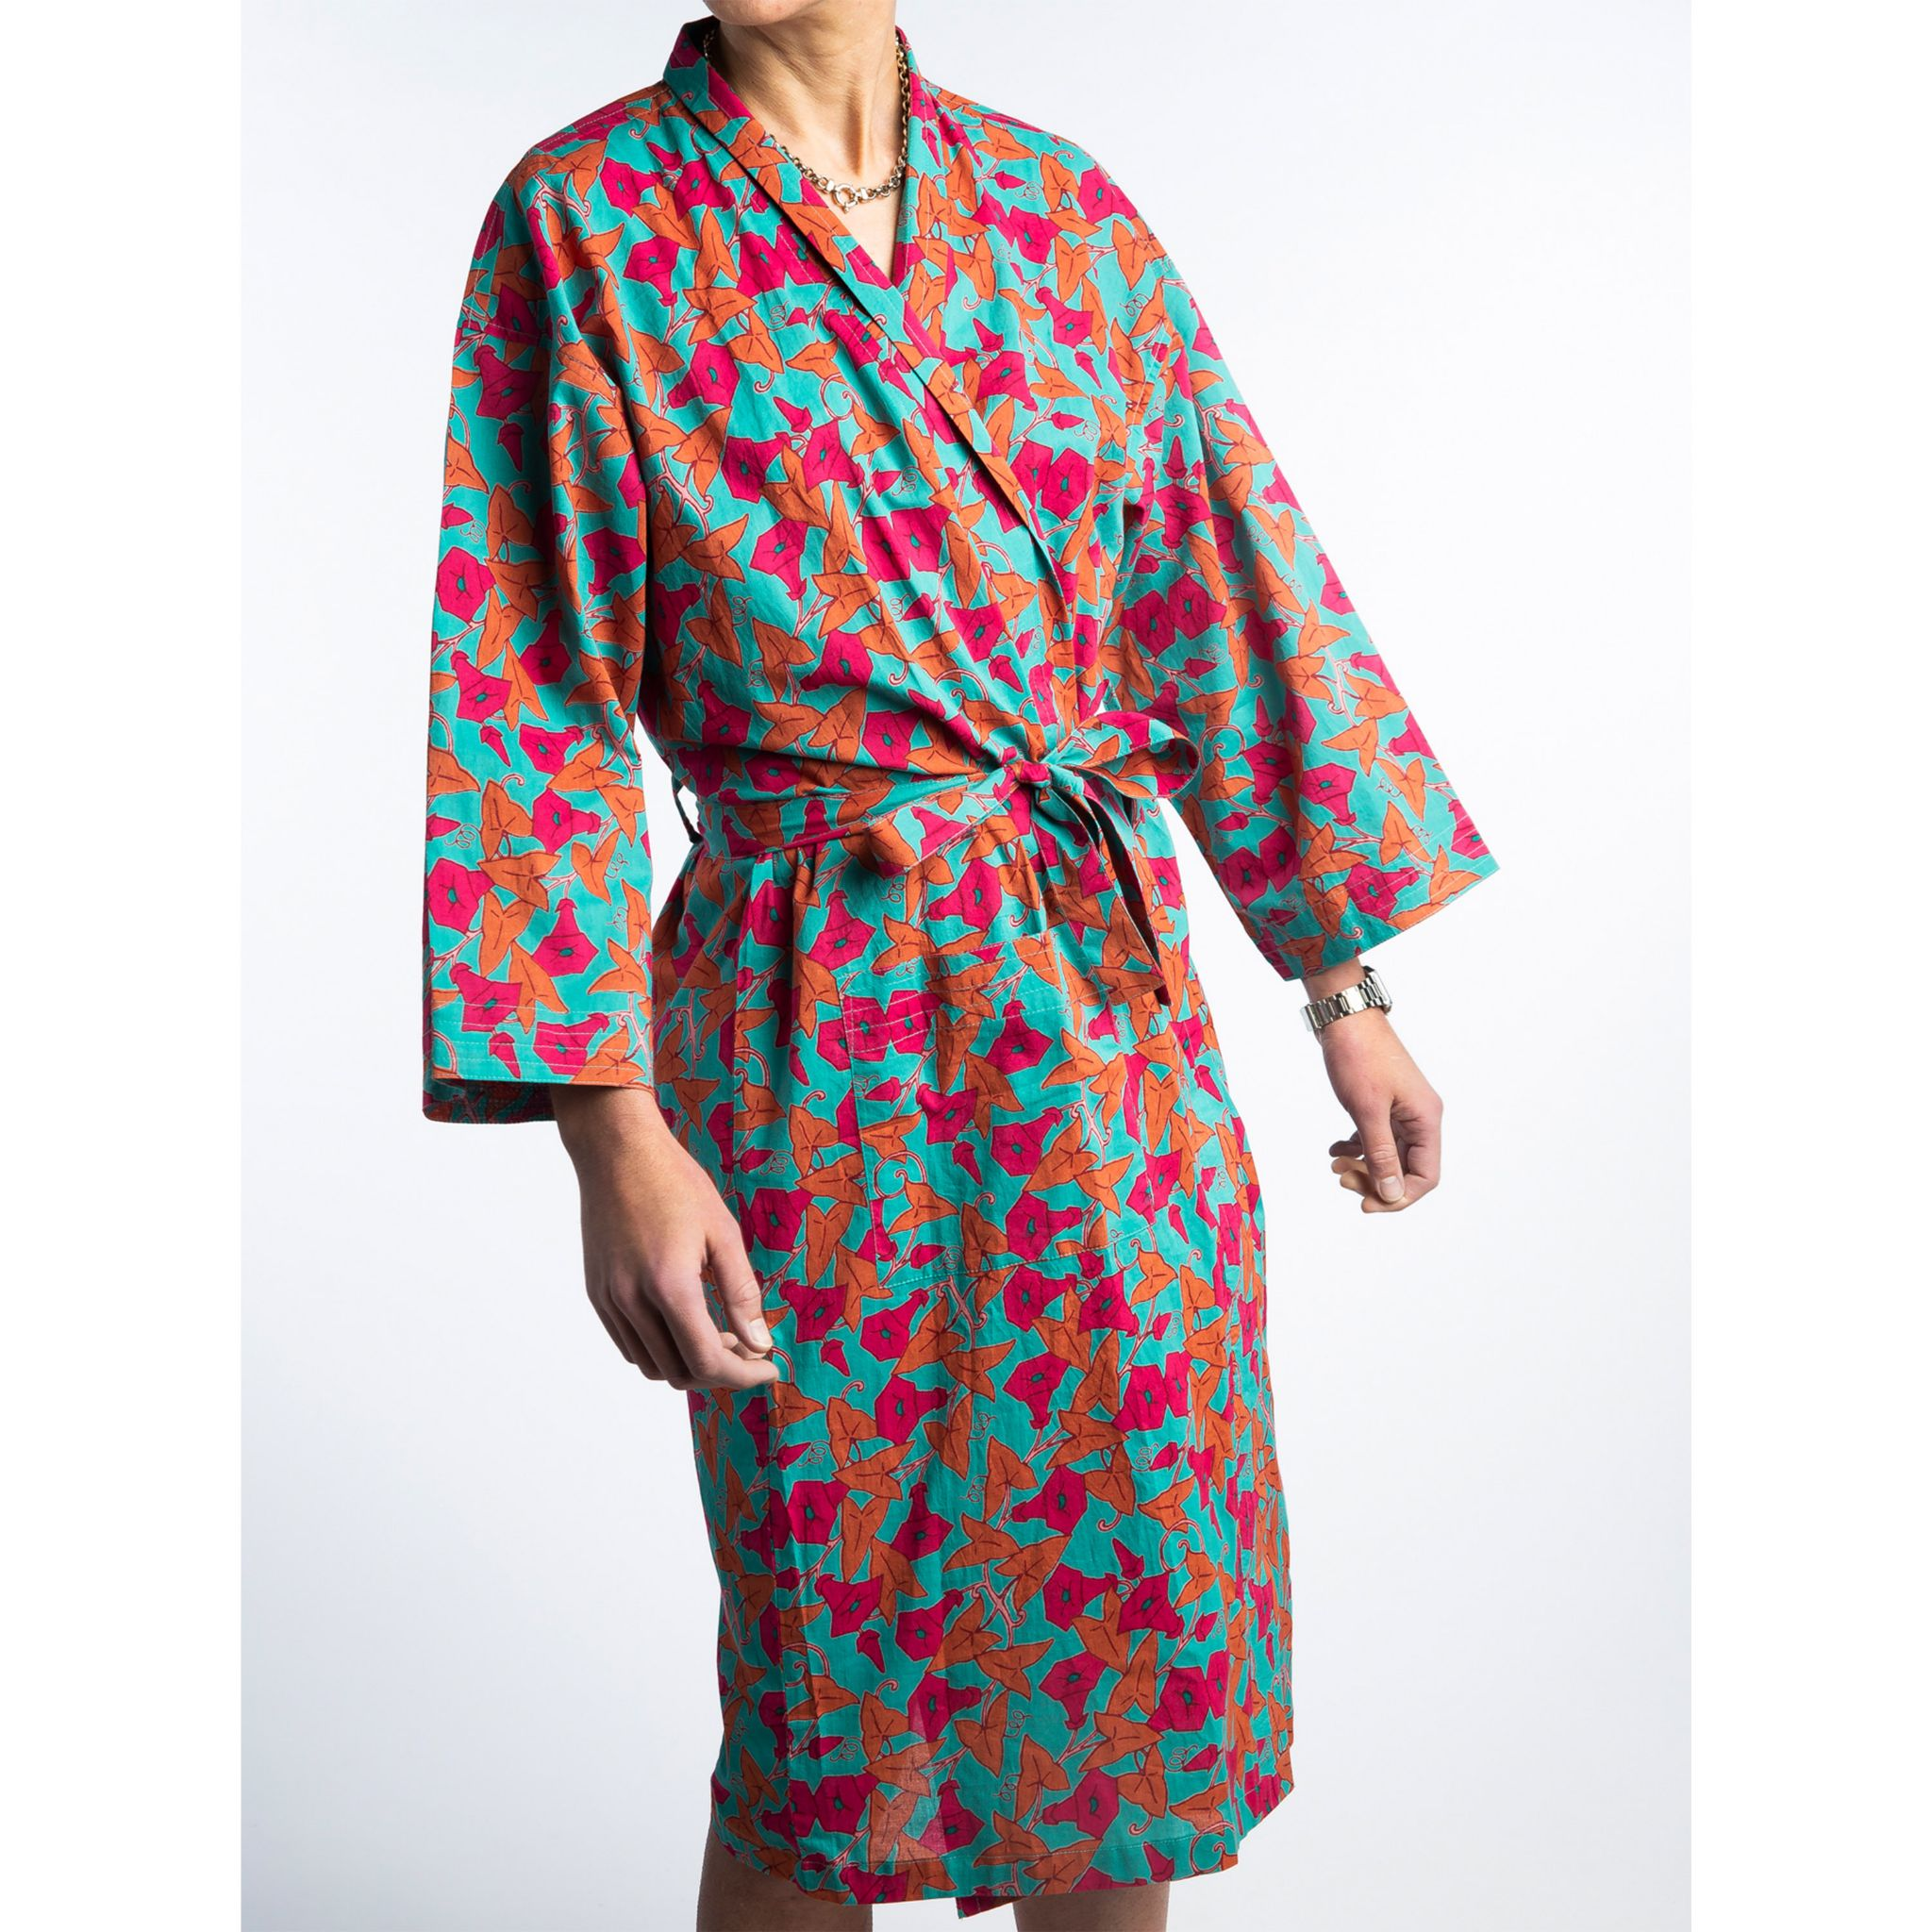 Printed Cotton Robe - Ipomee Turquoise